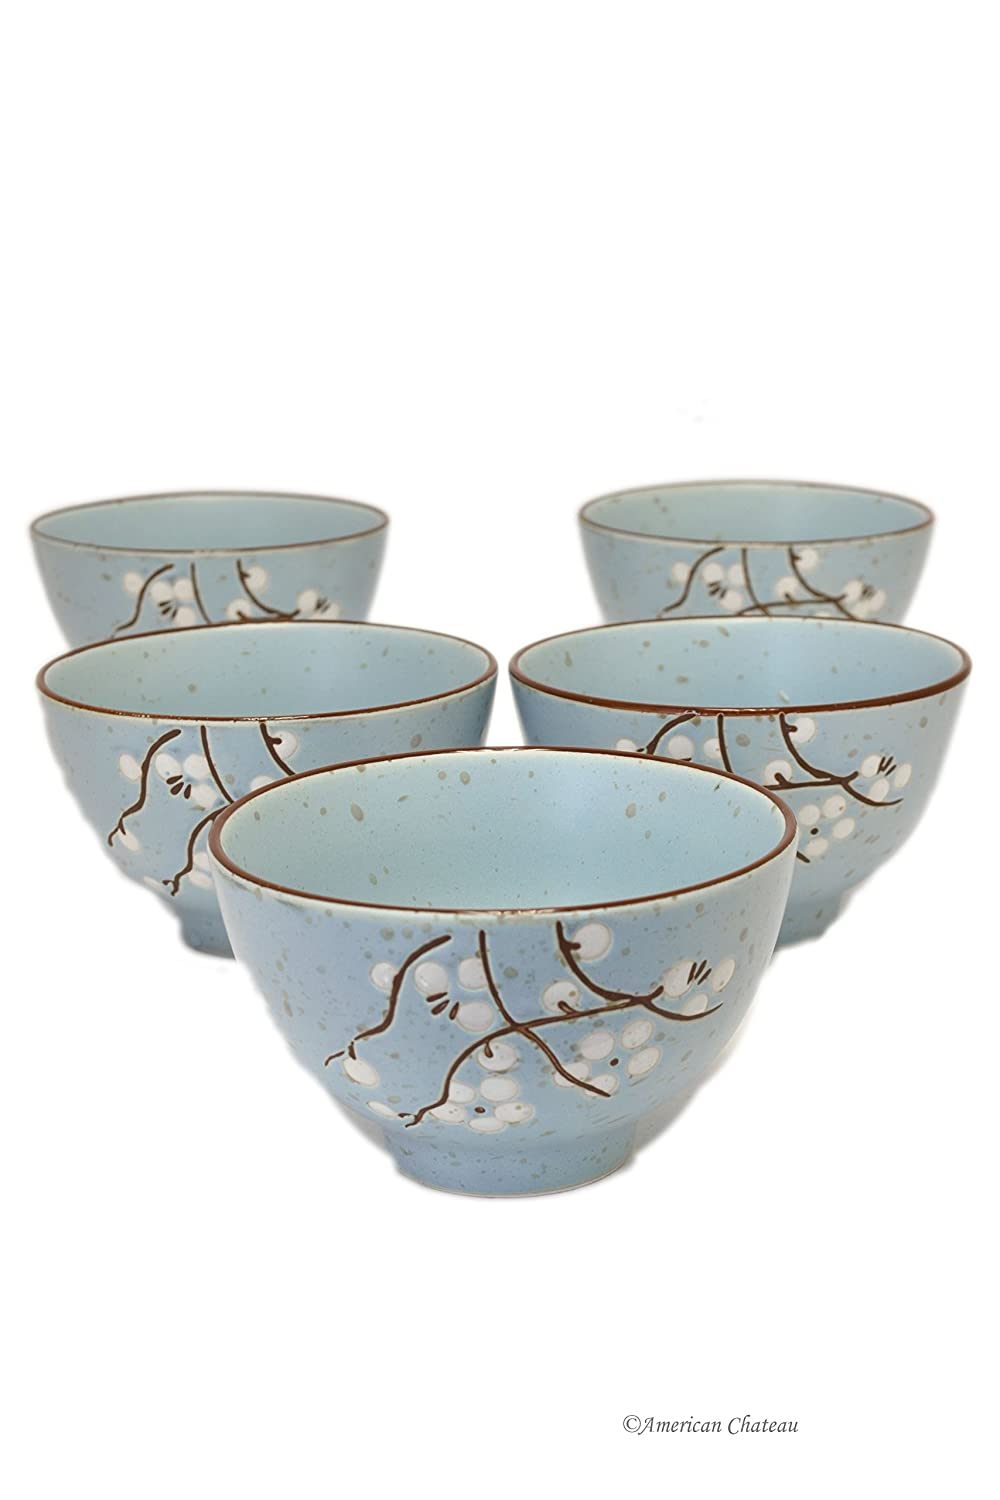 Set 5 Japanese Stoneware 10oz Asian Embossed Cherry Blossom Rice Bowls American Chateau